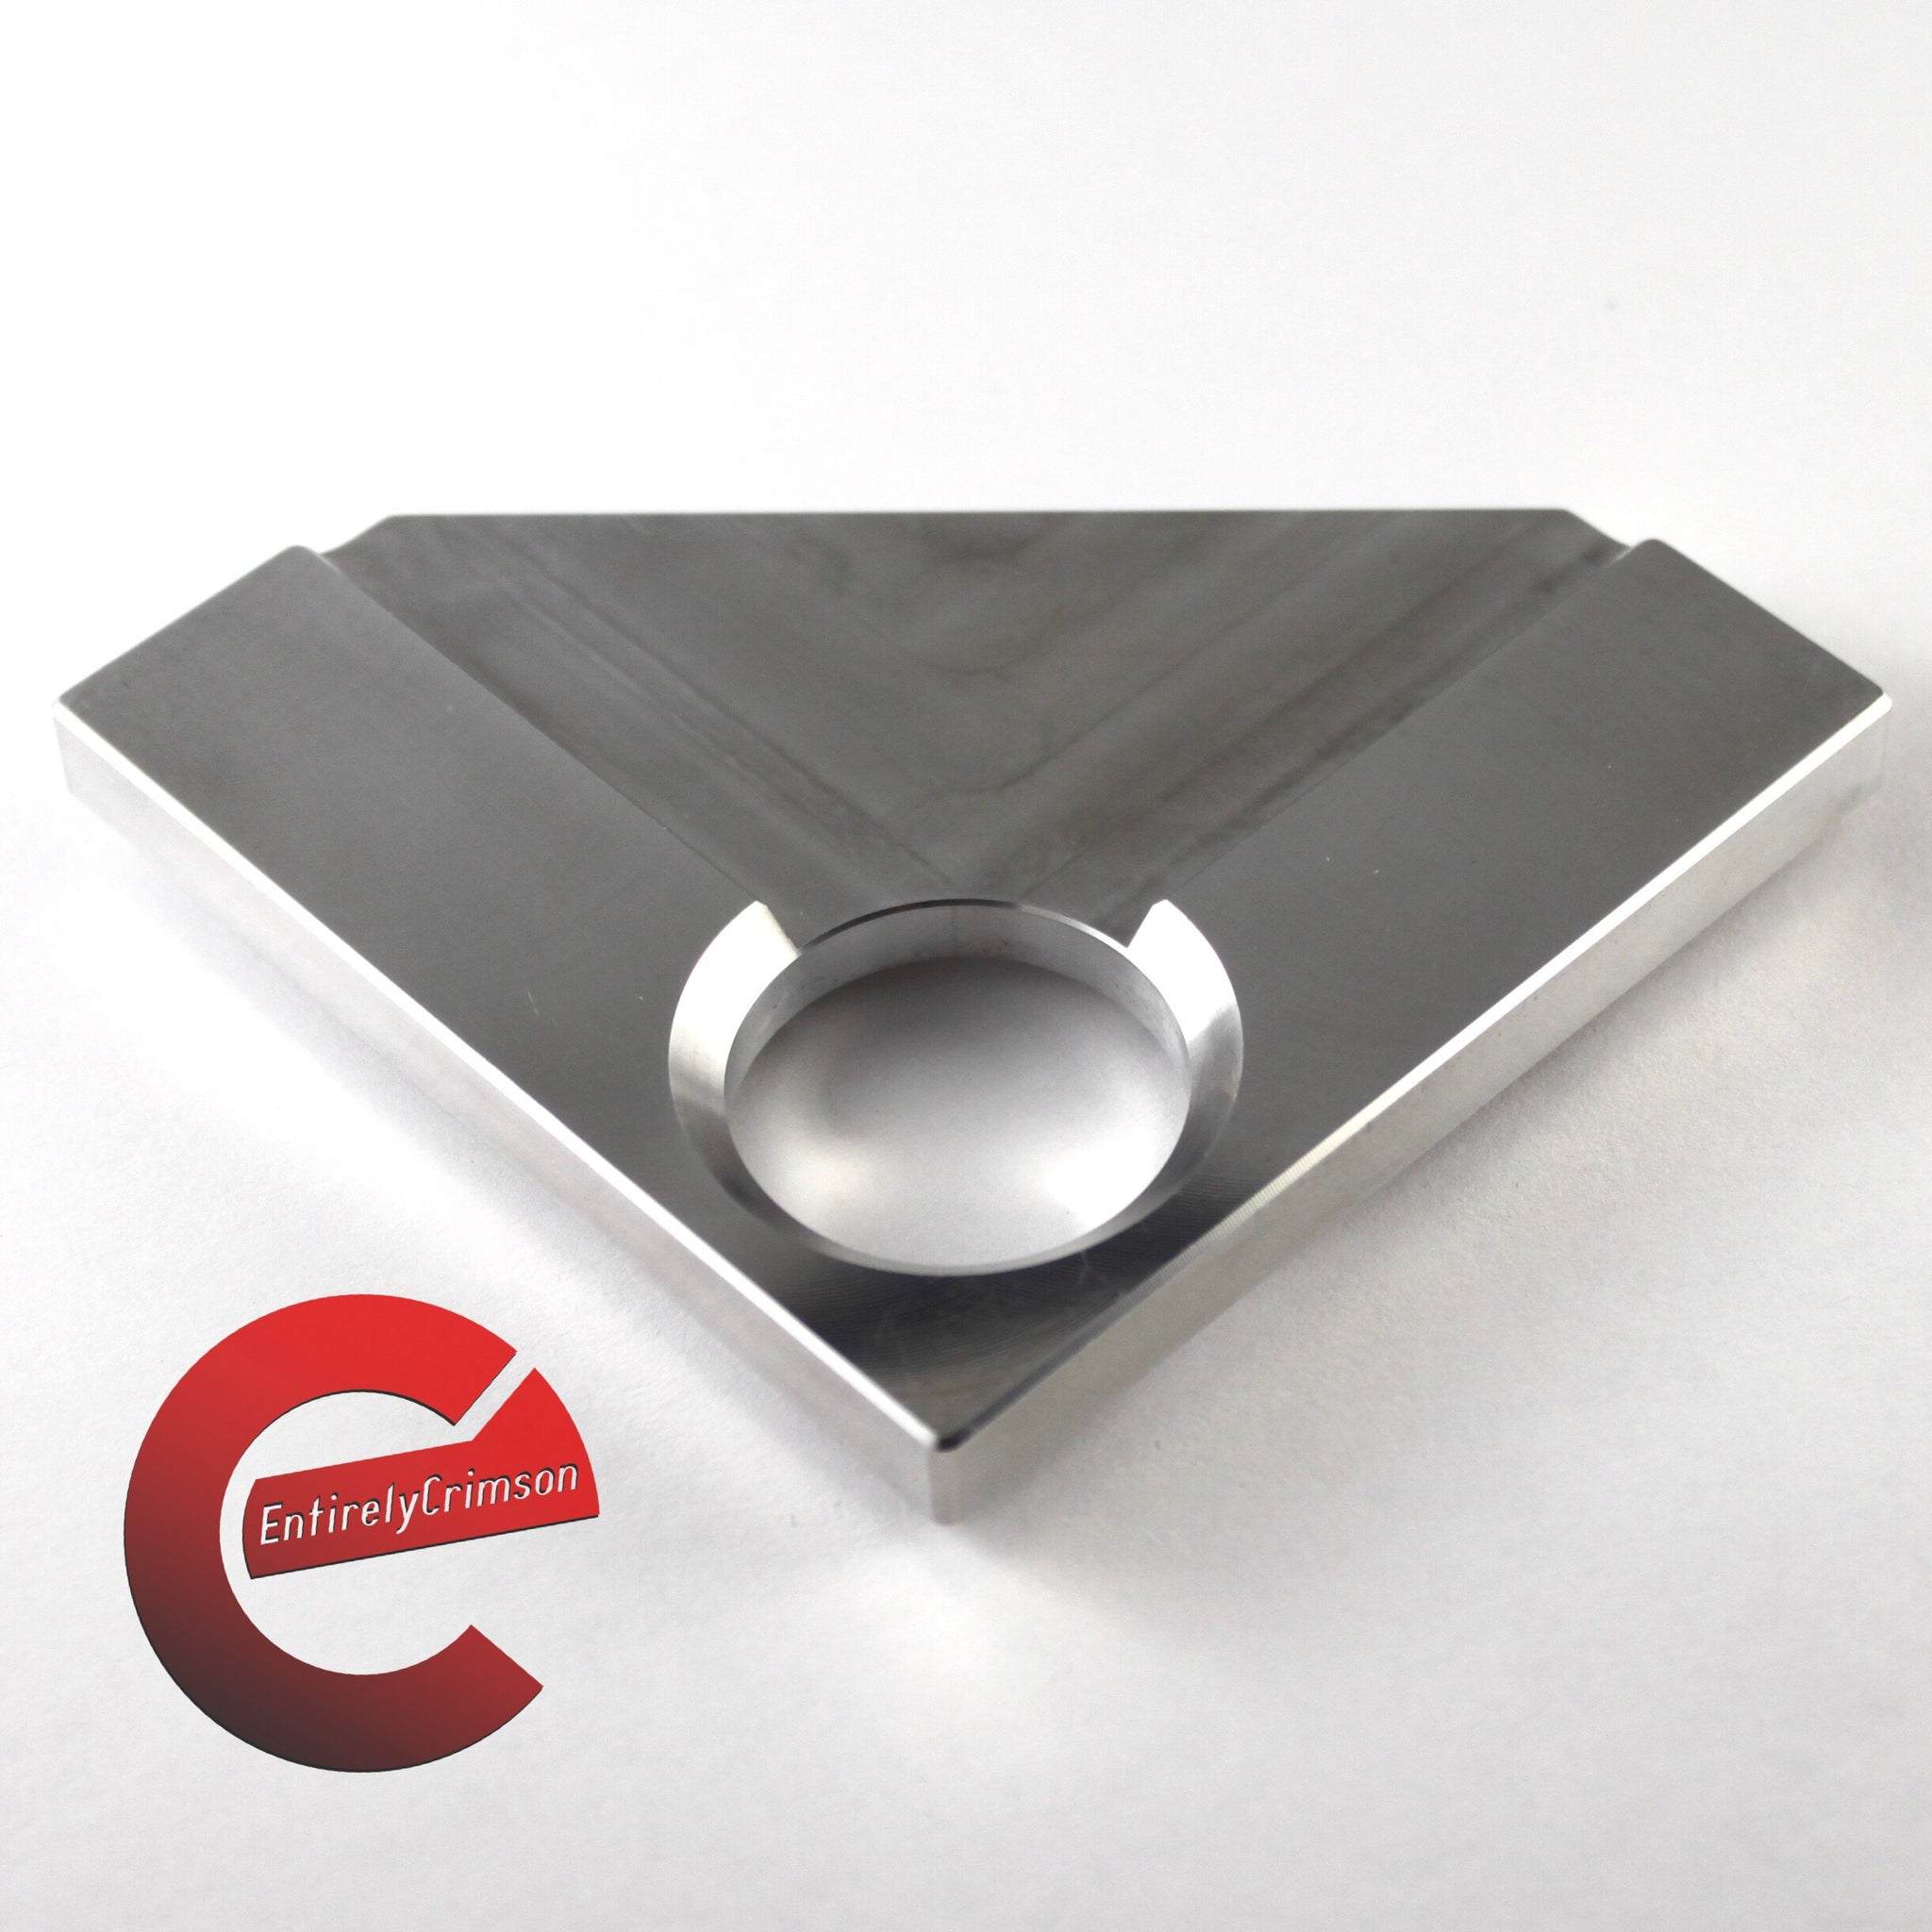 CNC Edge Finder Touch Plate for WCS – EntirelyCrimson